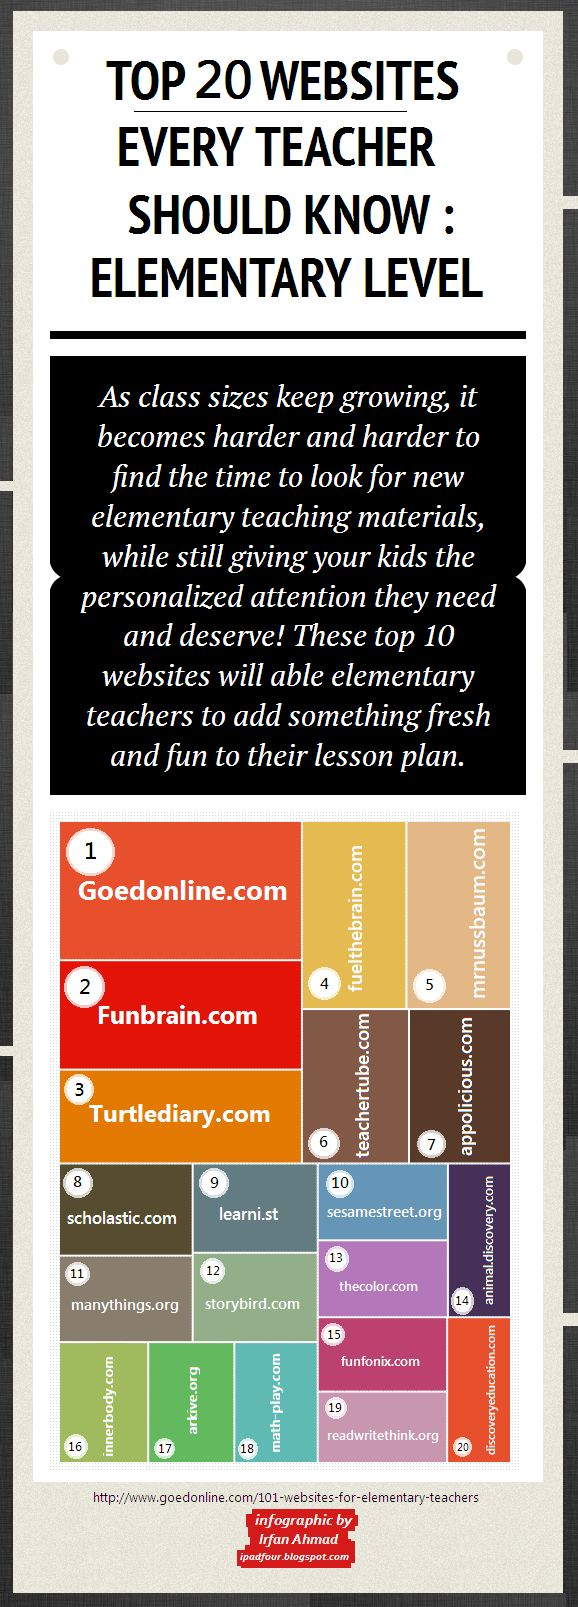 Top 20 Websites Every Teacher Should Know: Elementary Level --  www.teacherspayteachers.com is another great resource